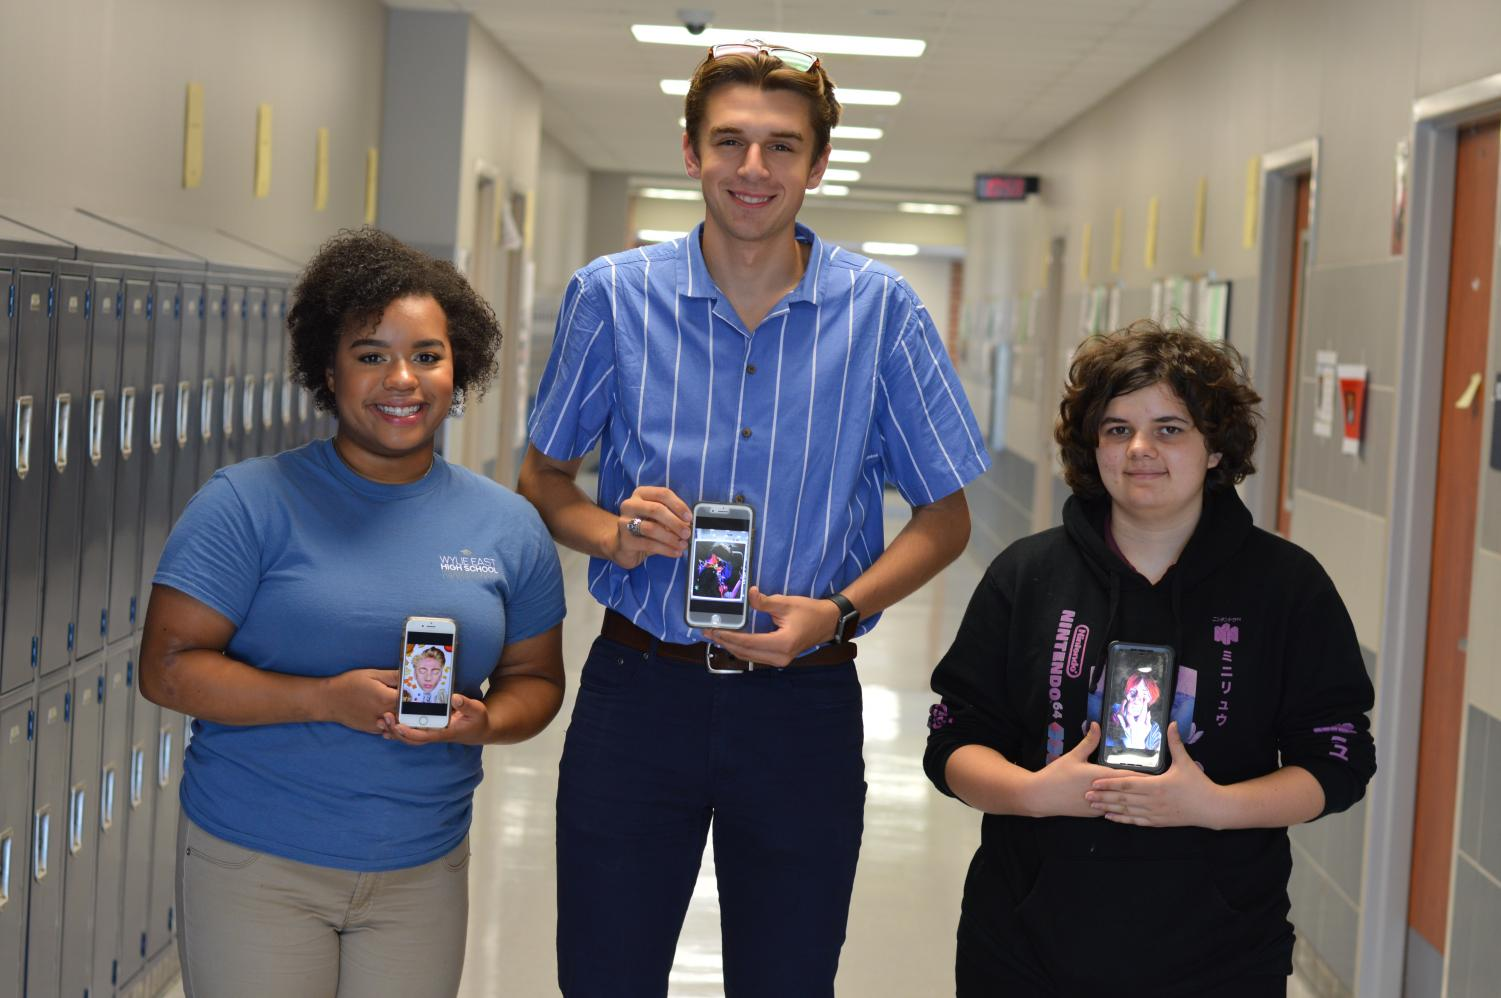 Thompson's top trainees \\ Seniors Kaylah Casasola,  Zachary Clore and Lexi Branch show off their artwork for the Texas Association of School Boards 2019 Conference Students Show. Students in the Dallas area send in their artwork for display and these students' work was selected to compete.